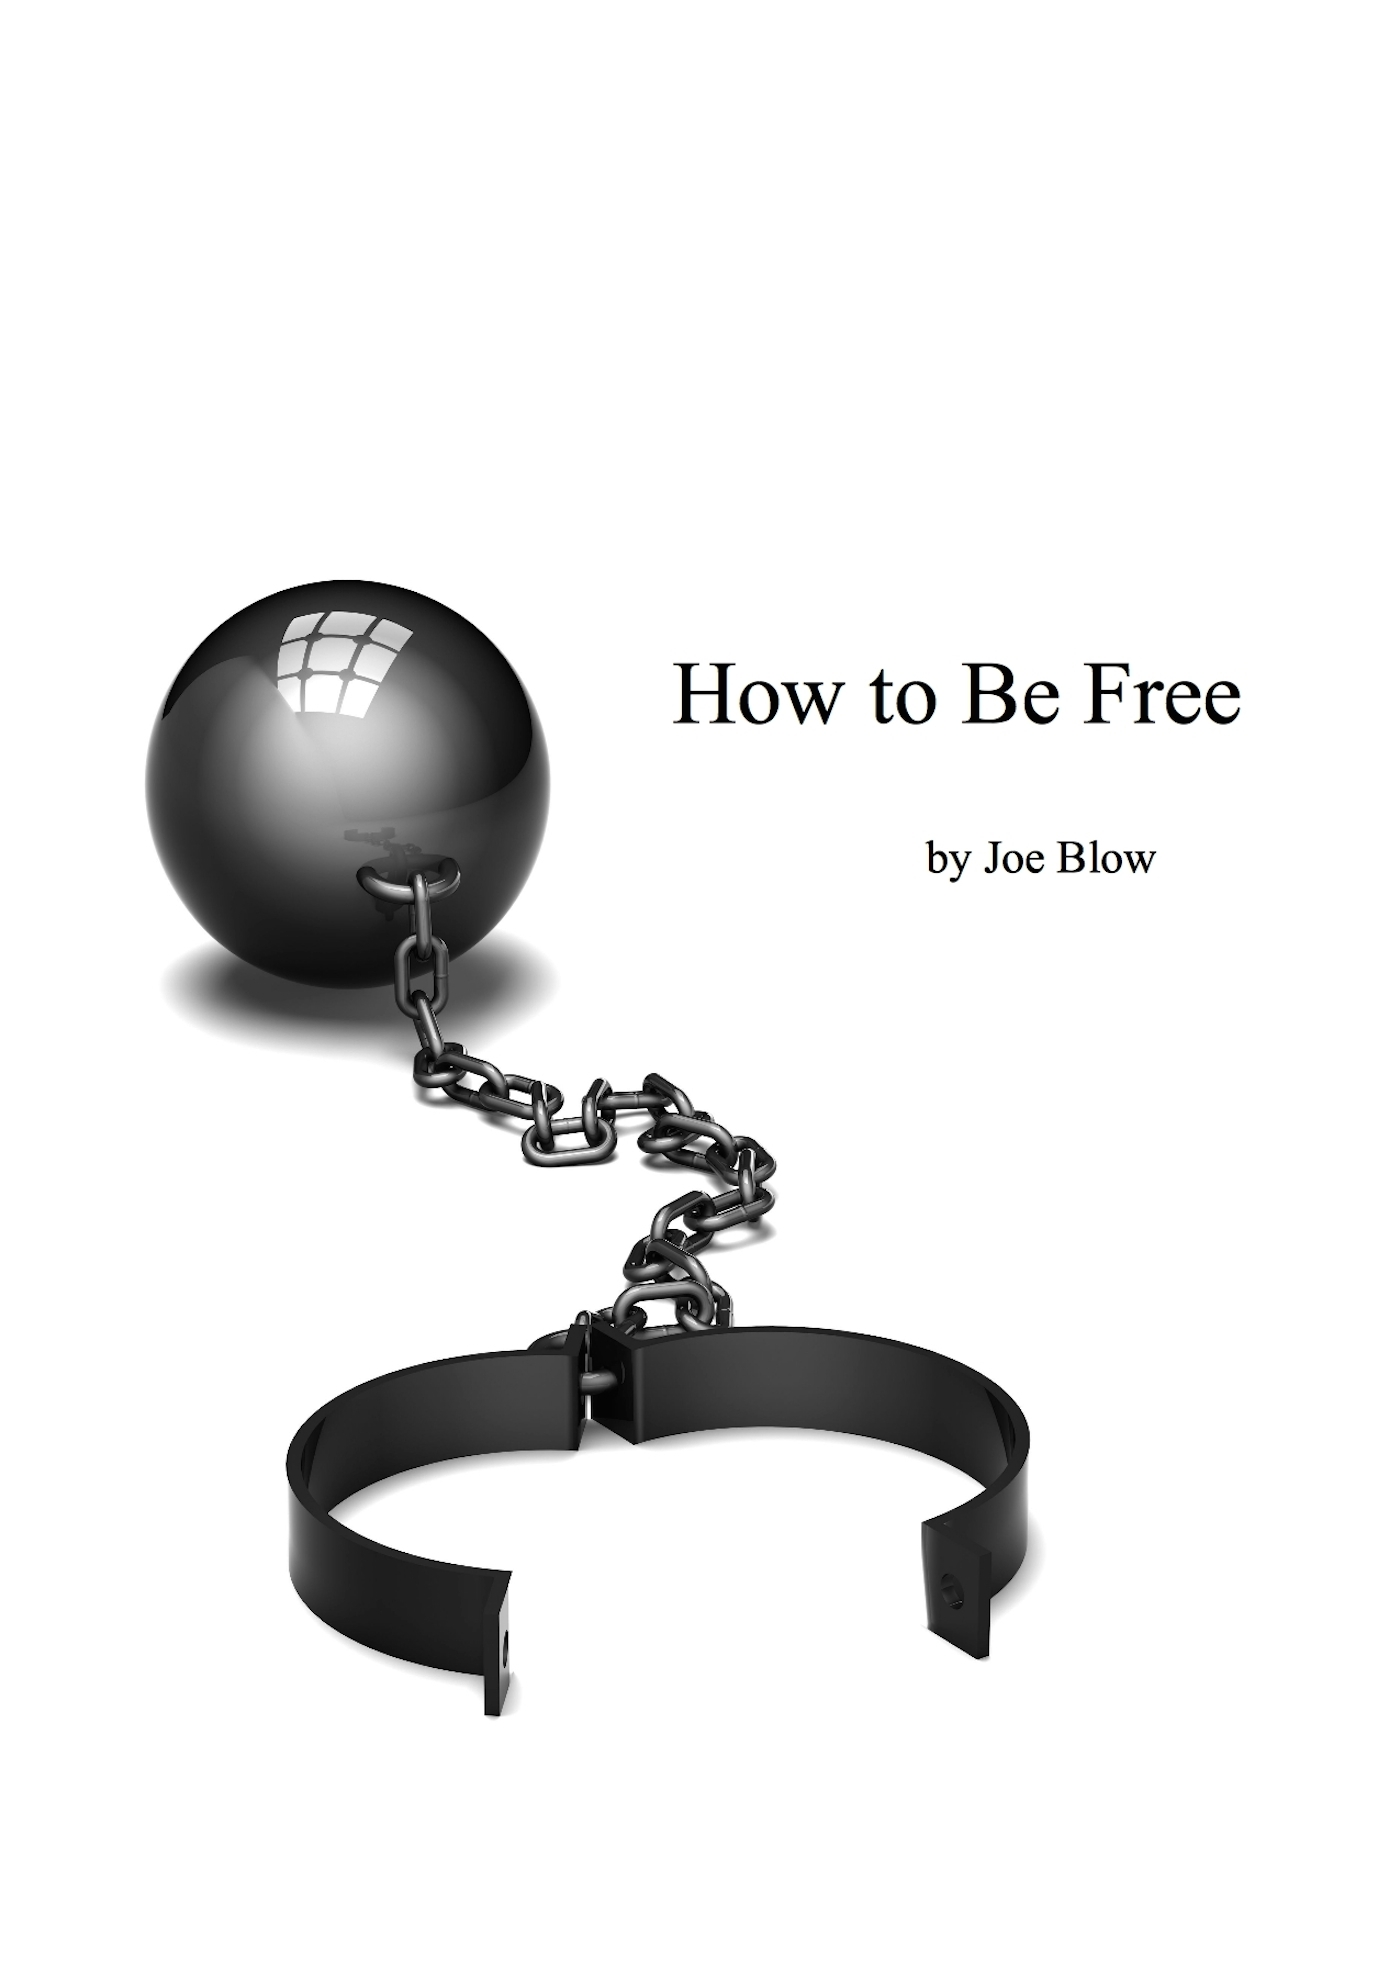 How to Be Free (sst-cccxii)